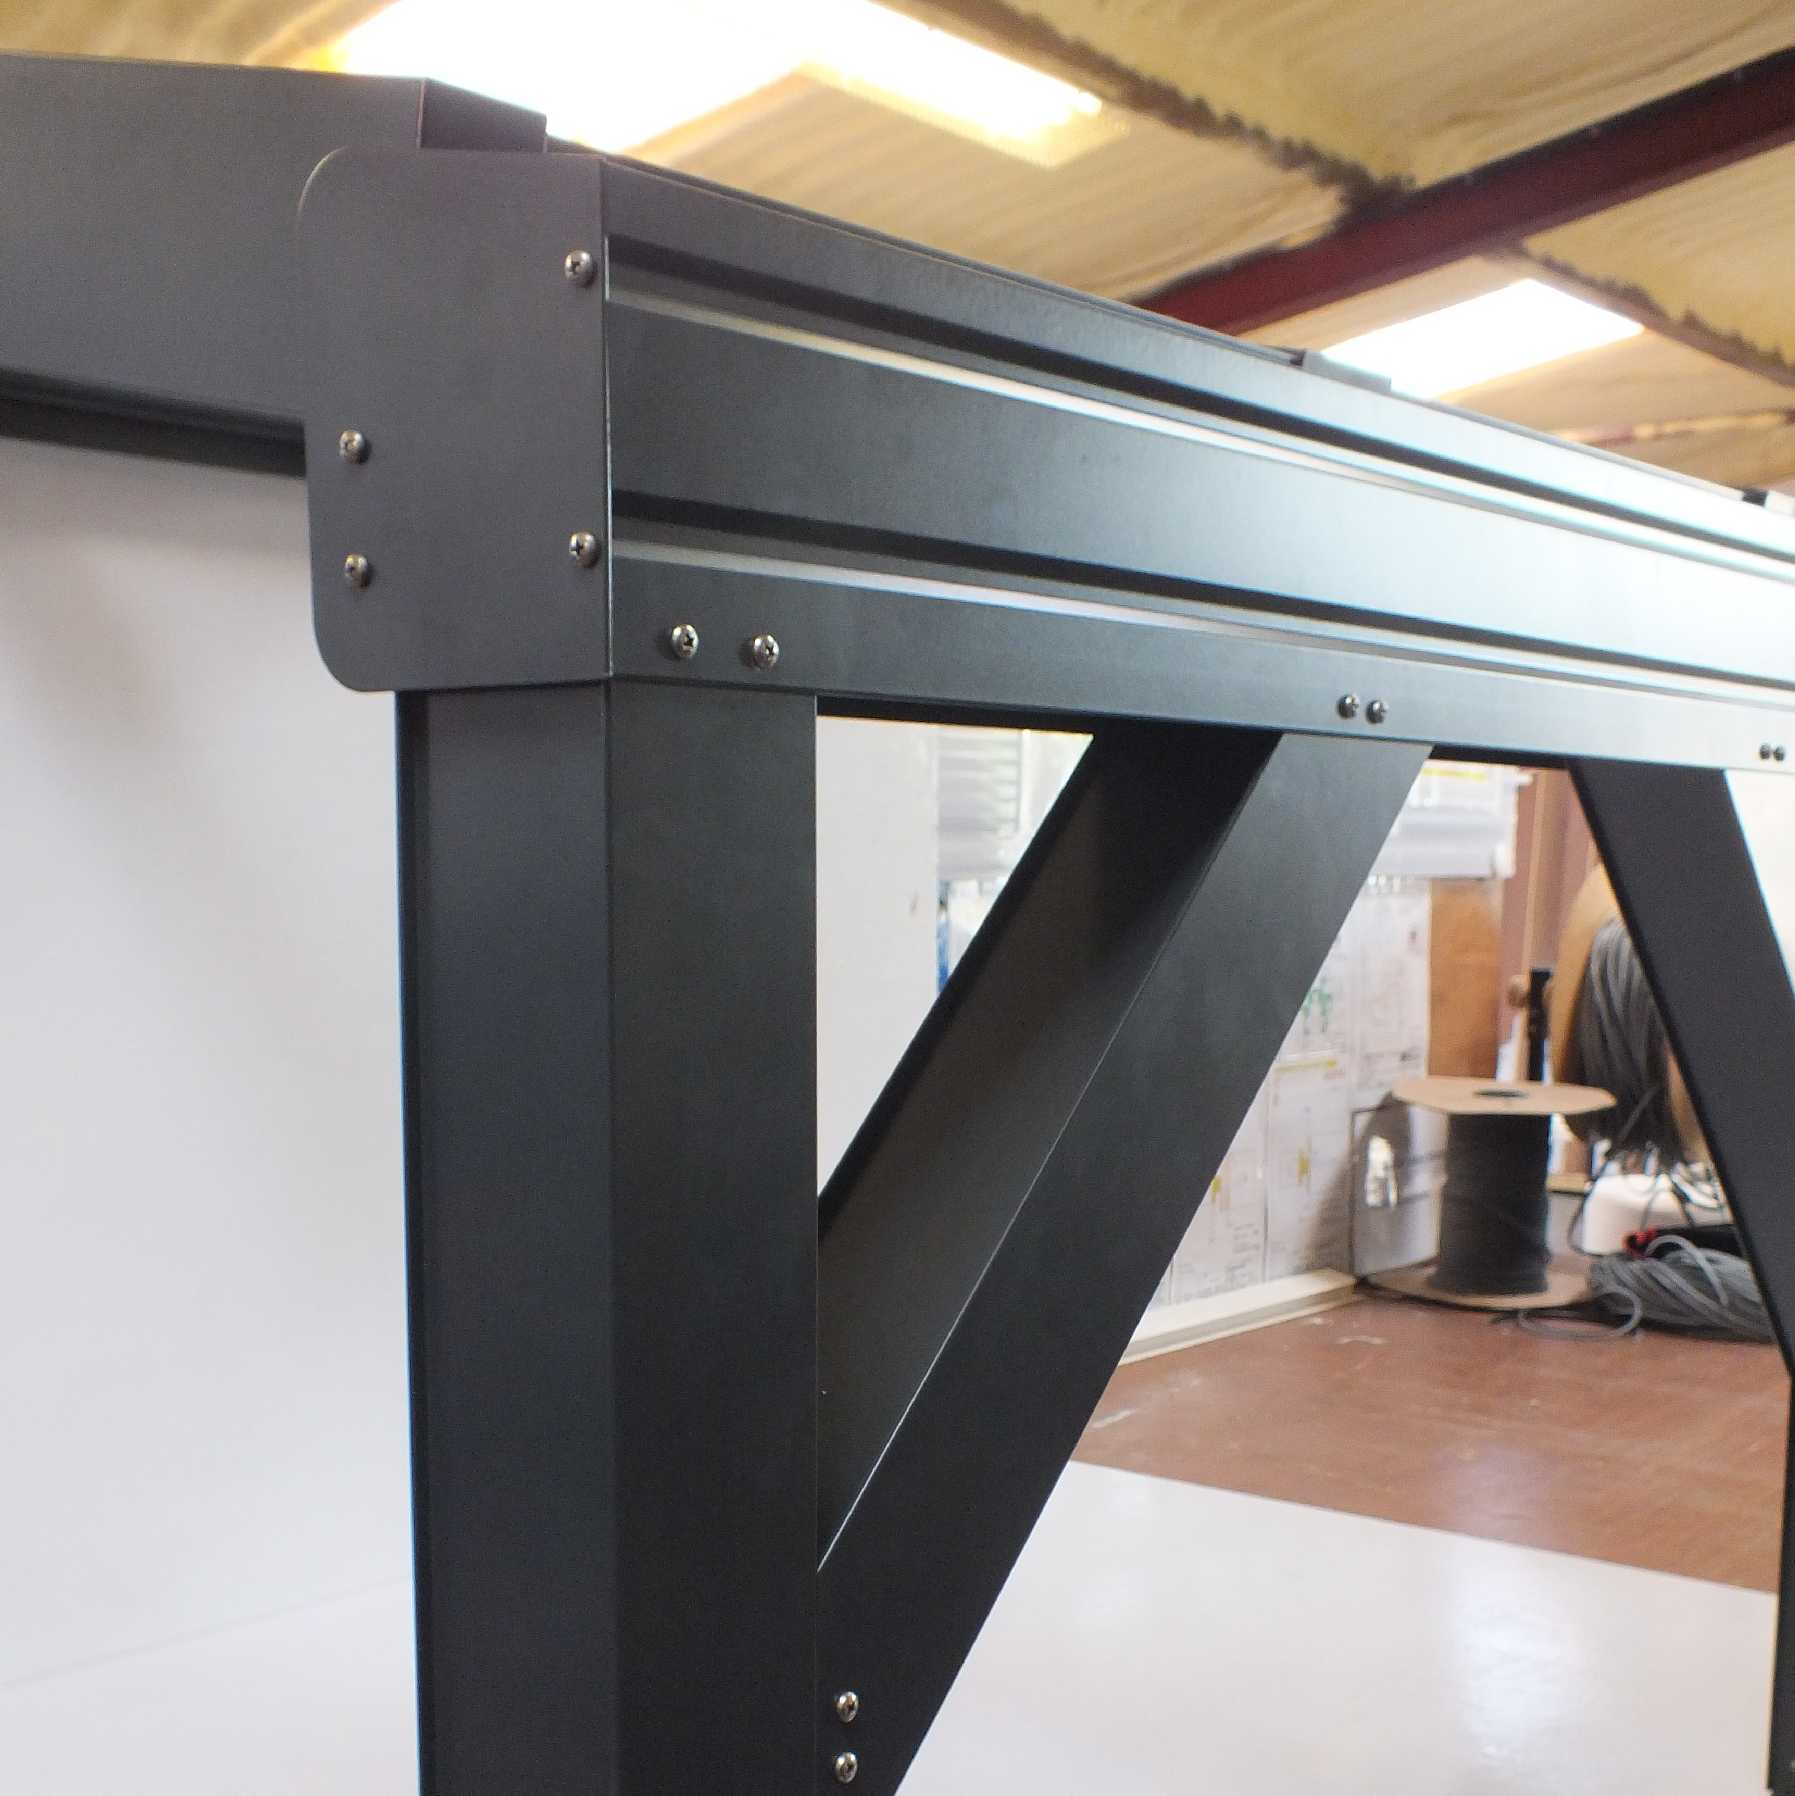 Omega Smart Lean-To Canopy, Anthracite Grey, UNGLAZED for 6mm Glazing - 3.5m (W) x 1.5m (P), (3) Supporting Posts from Omega Build